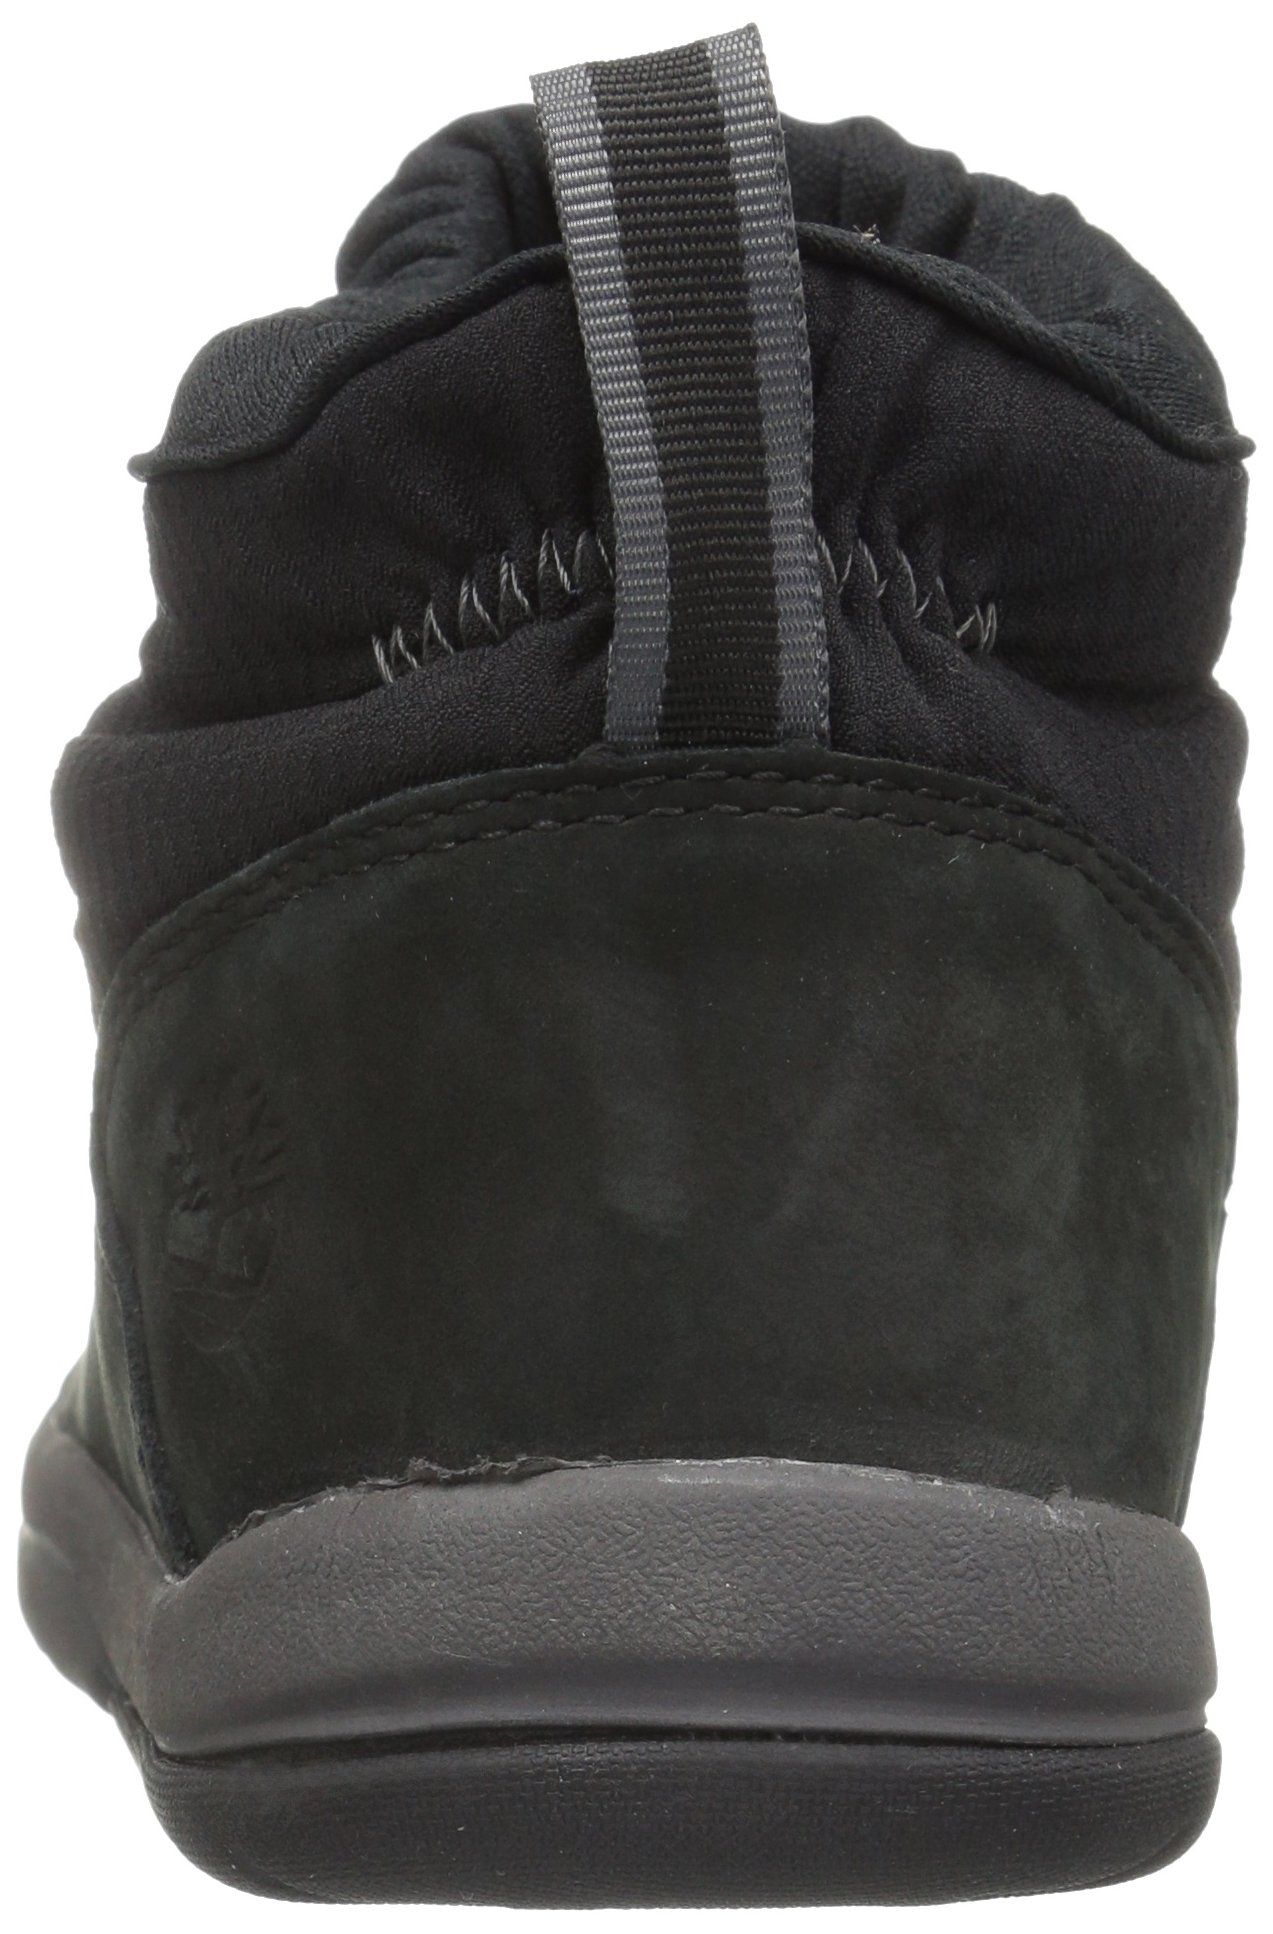 Timberland Unisex Toddle Tracks Warm Fabric Leather Bootie Snow Boot Black Nubuck 12 M US Little Kid by Timberland (Image #2)